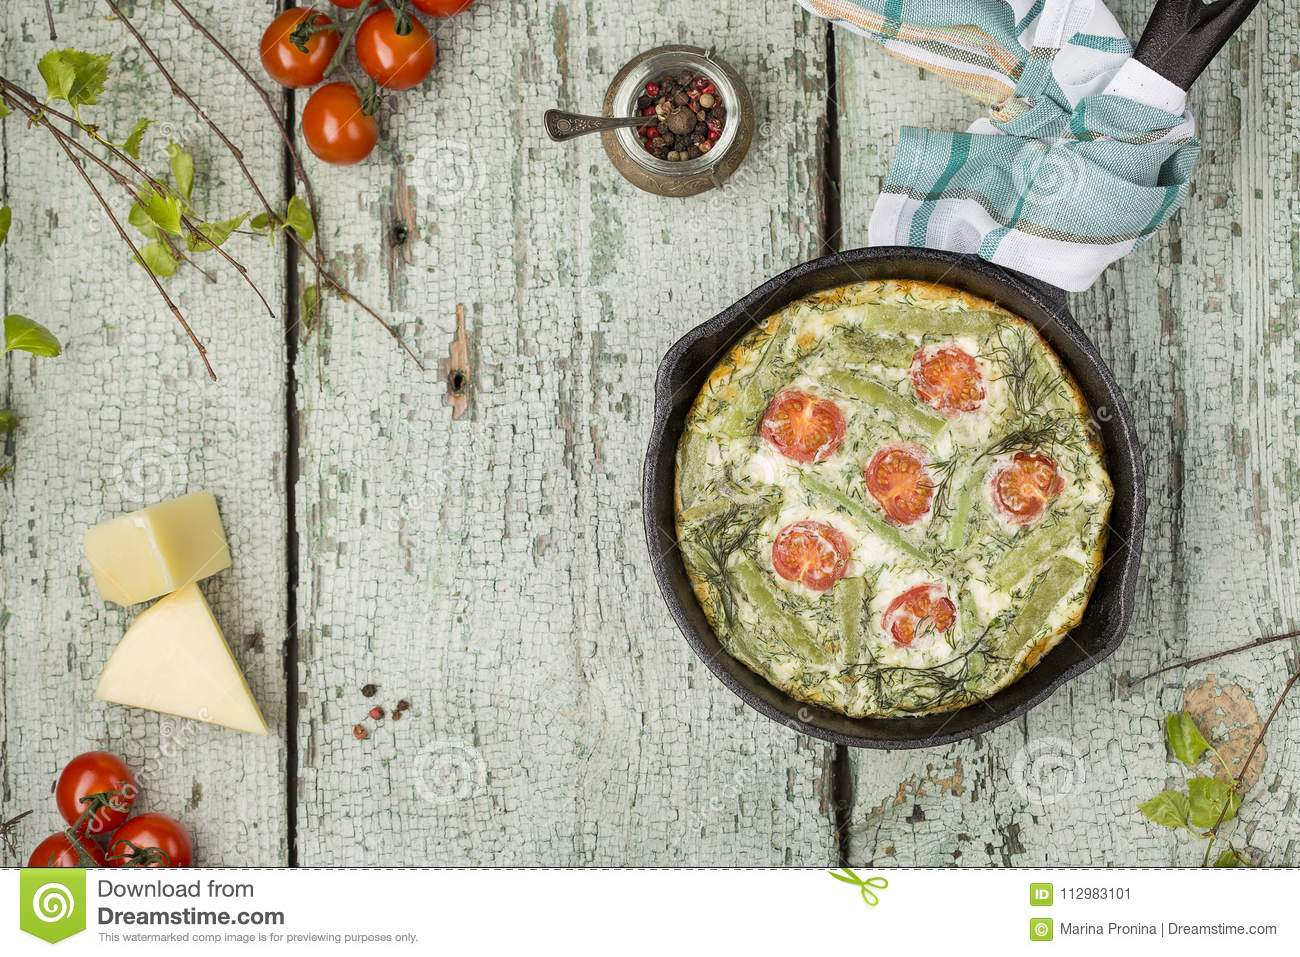 Classic omelet with cherry tomatoes, cheese and herbs